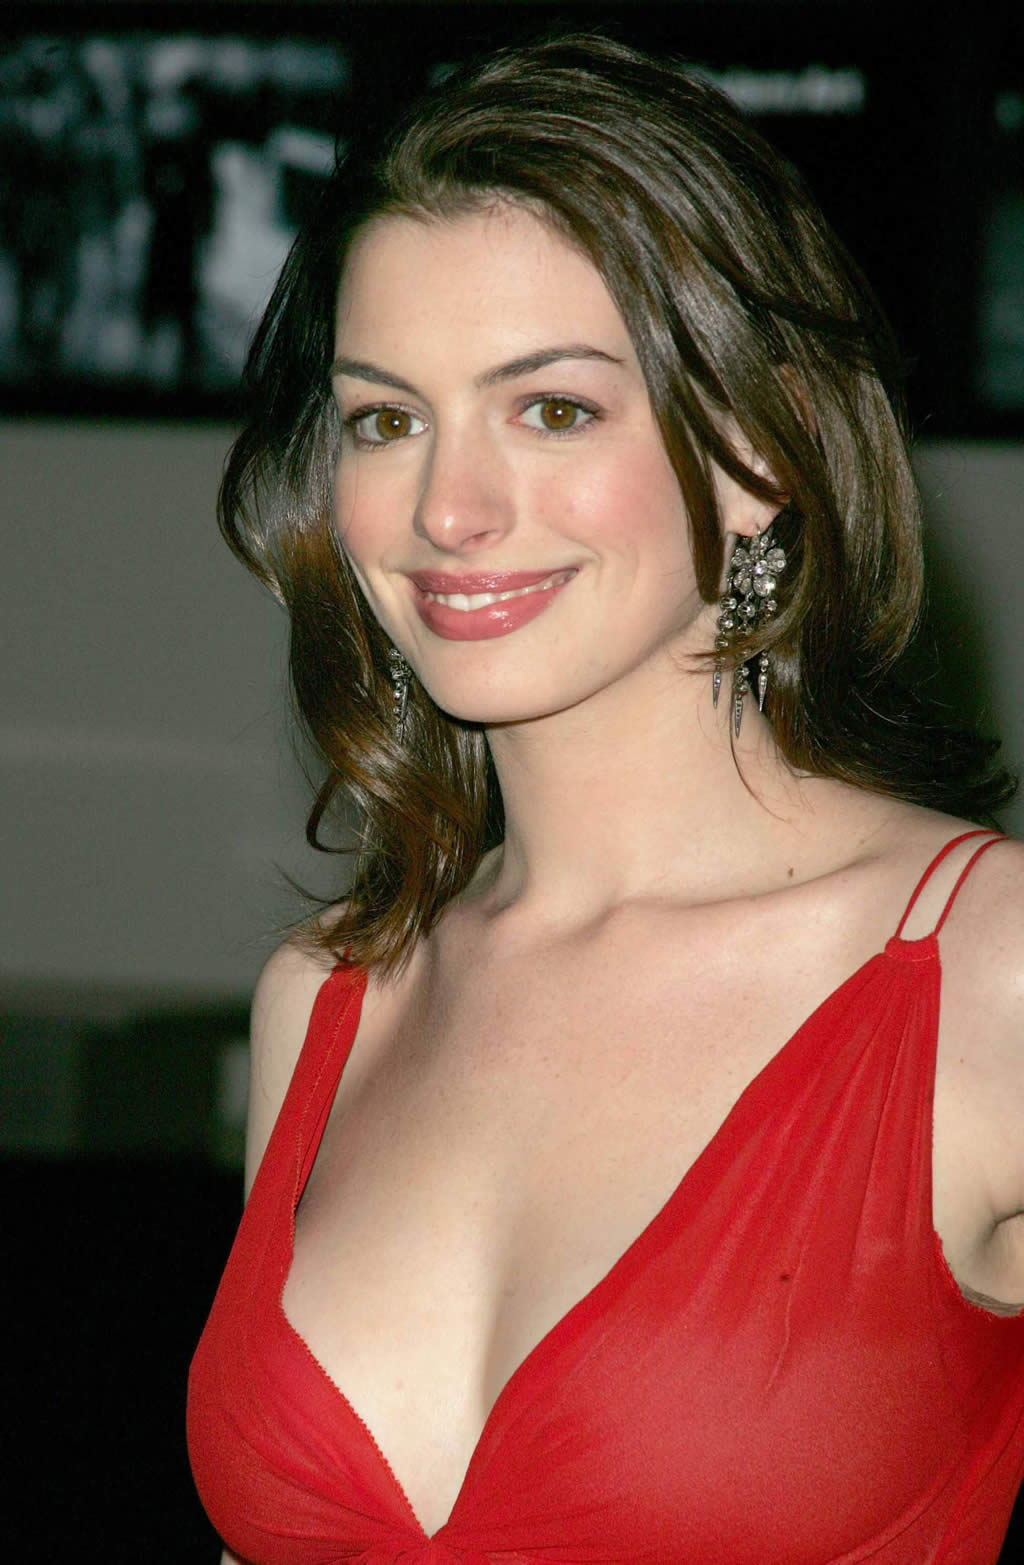 Anne hathaway pics picture 2